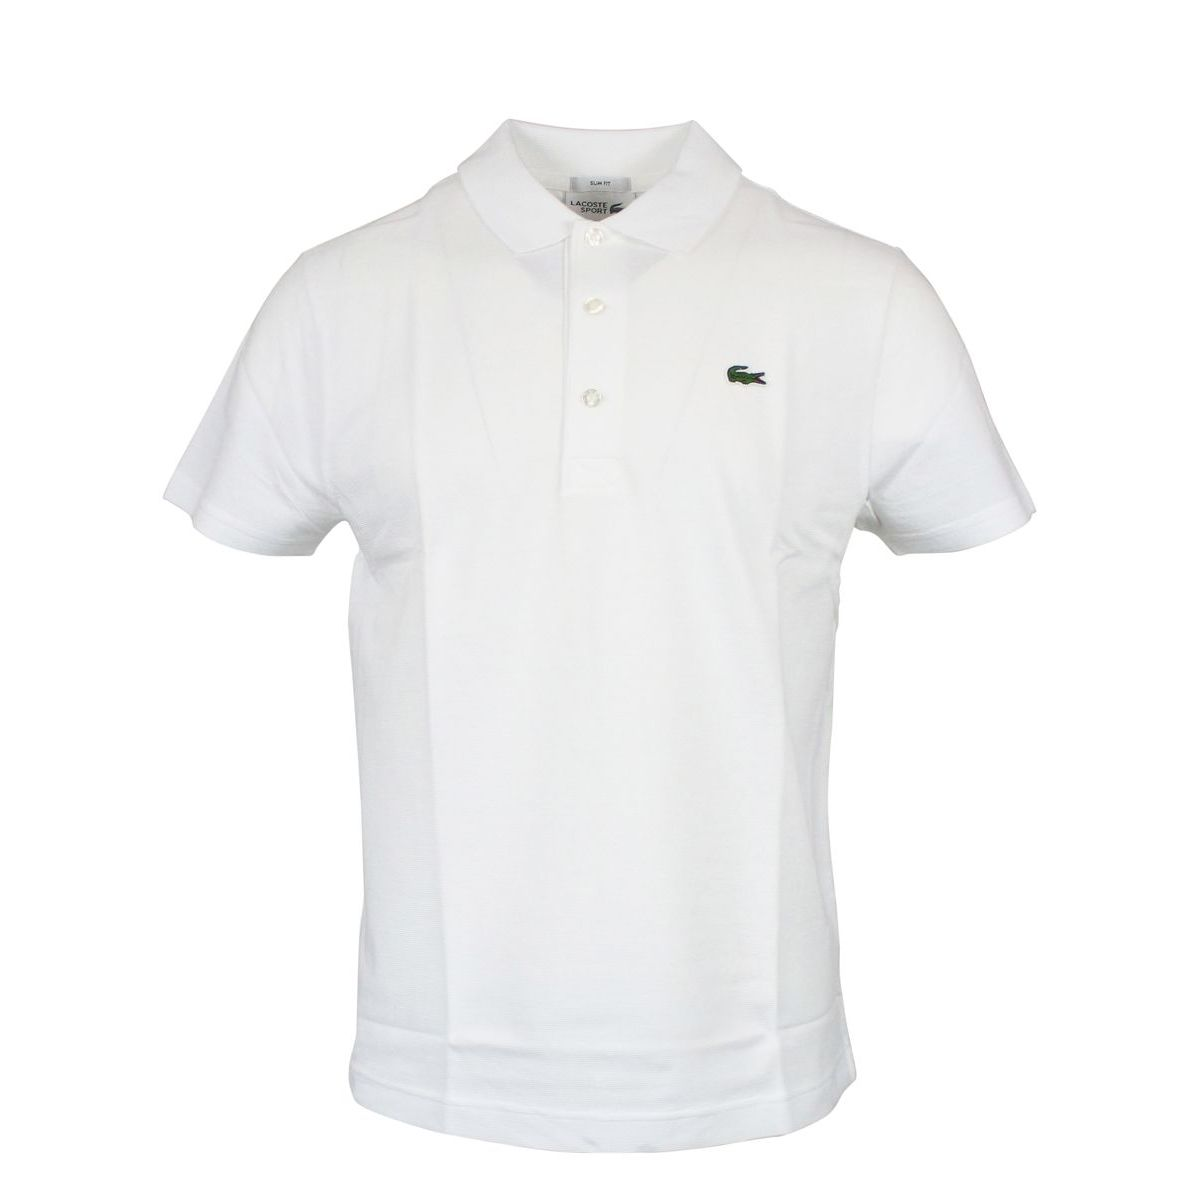 3-button sports slim fit polo shirt White Lacoste